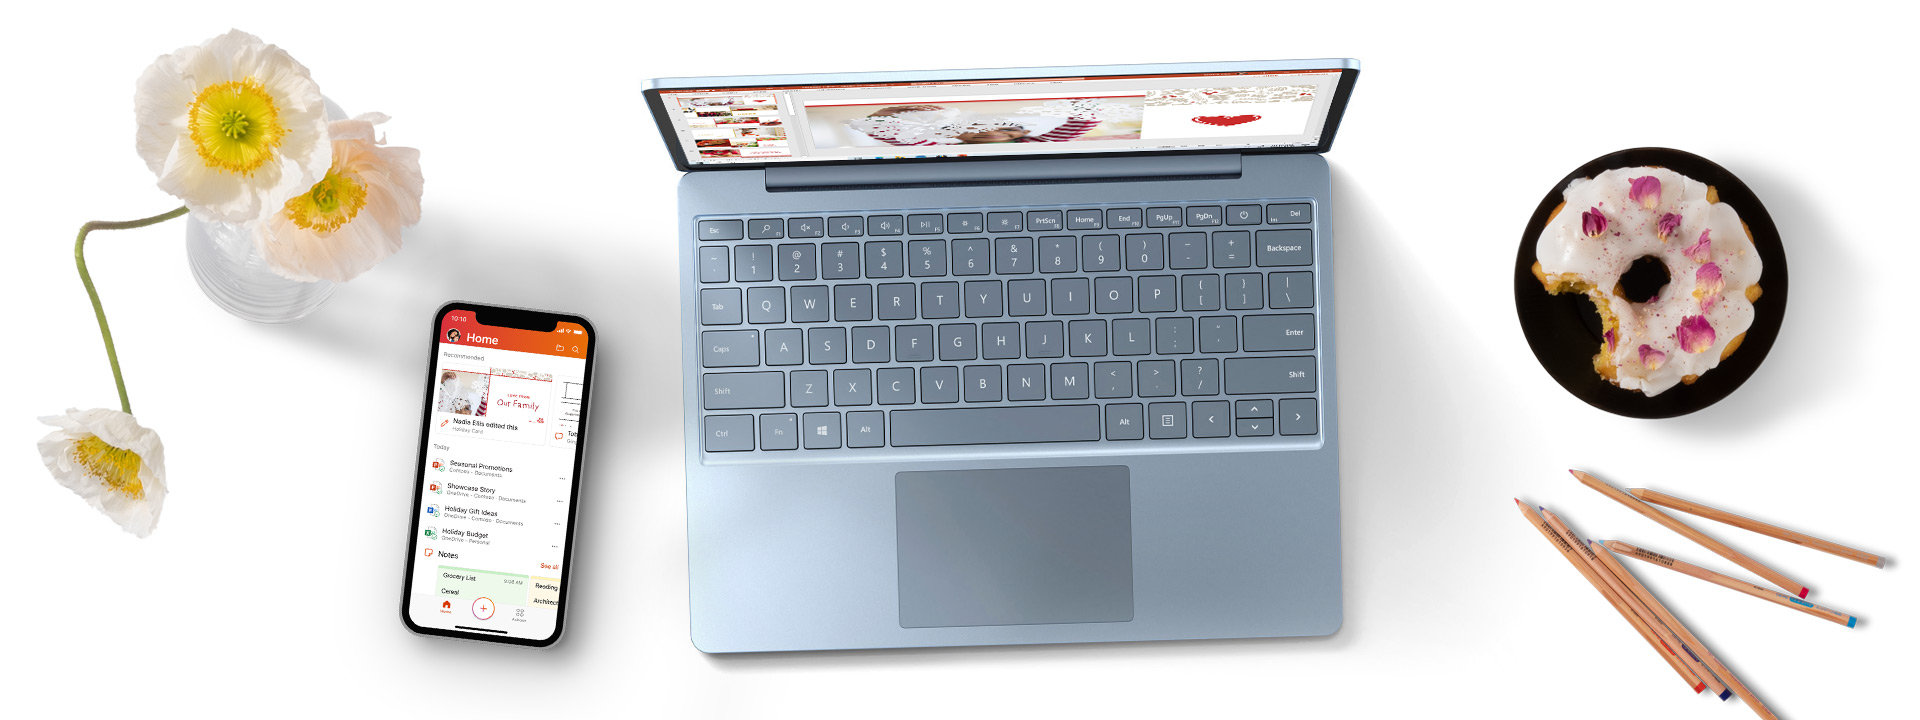 Surface Laptop Go with a phone, pencils, flower vase, and donut on a plate.